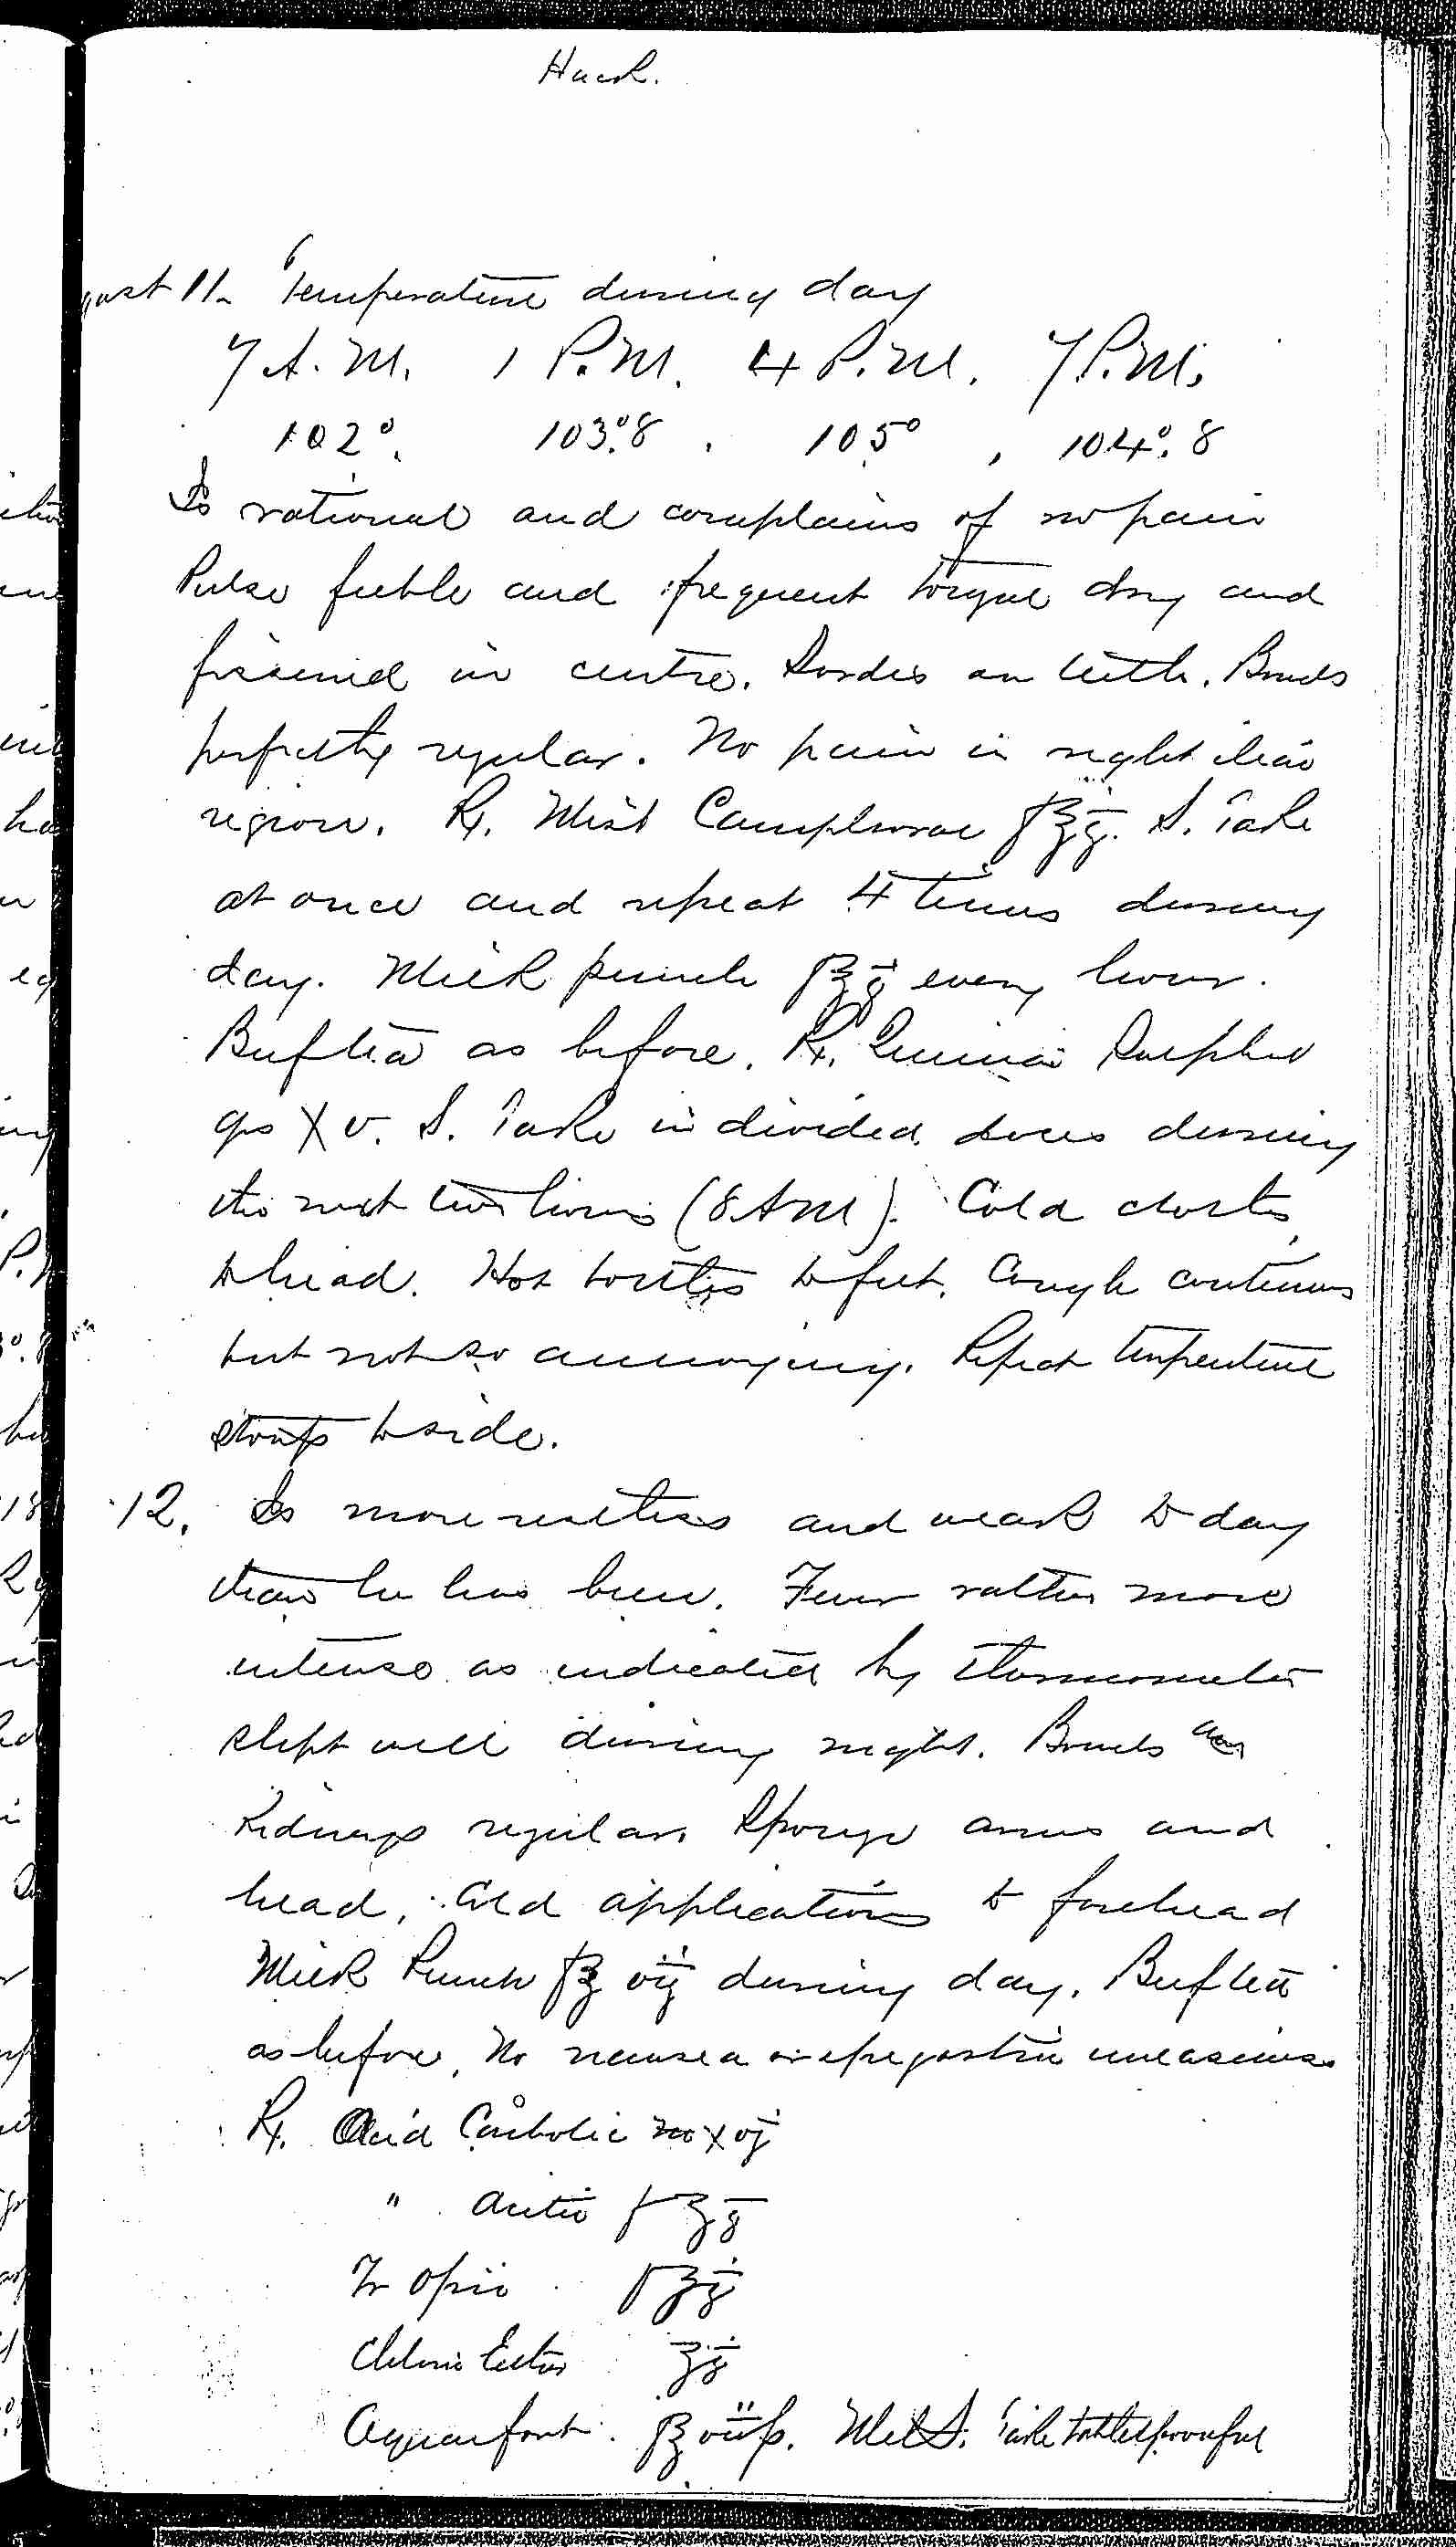 Entry for William Hack (page 5 of 7) in the log Hospital Tickets and Case Papers - Naval Hospital - Washington, D.C. - 1868-69